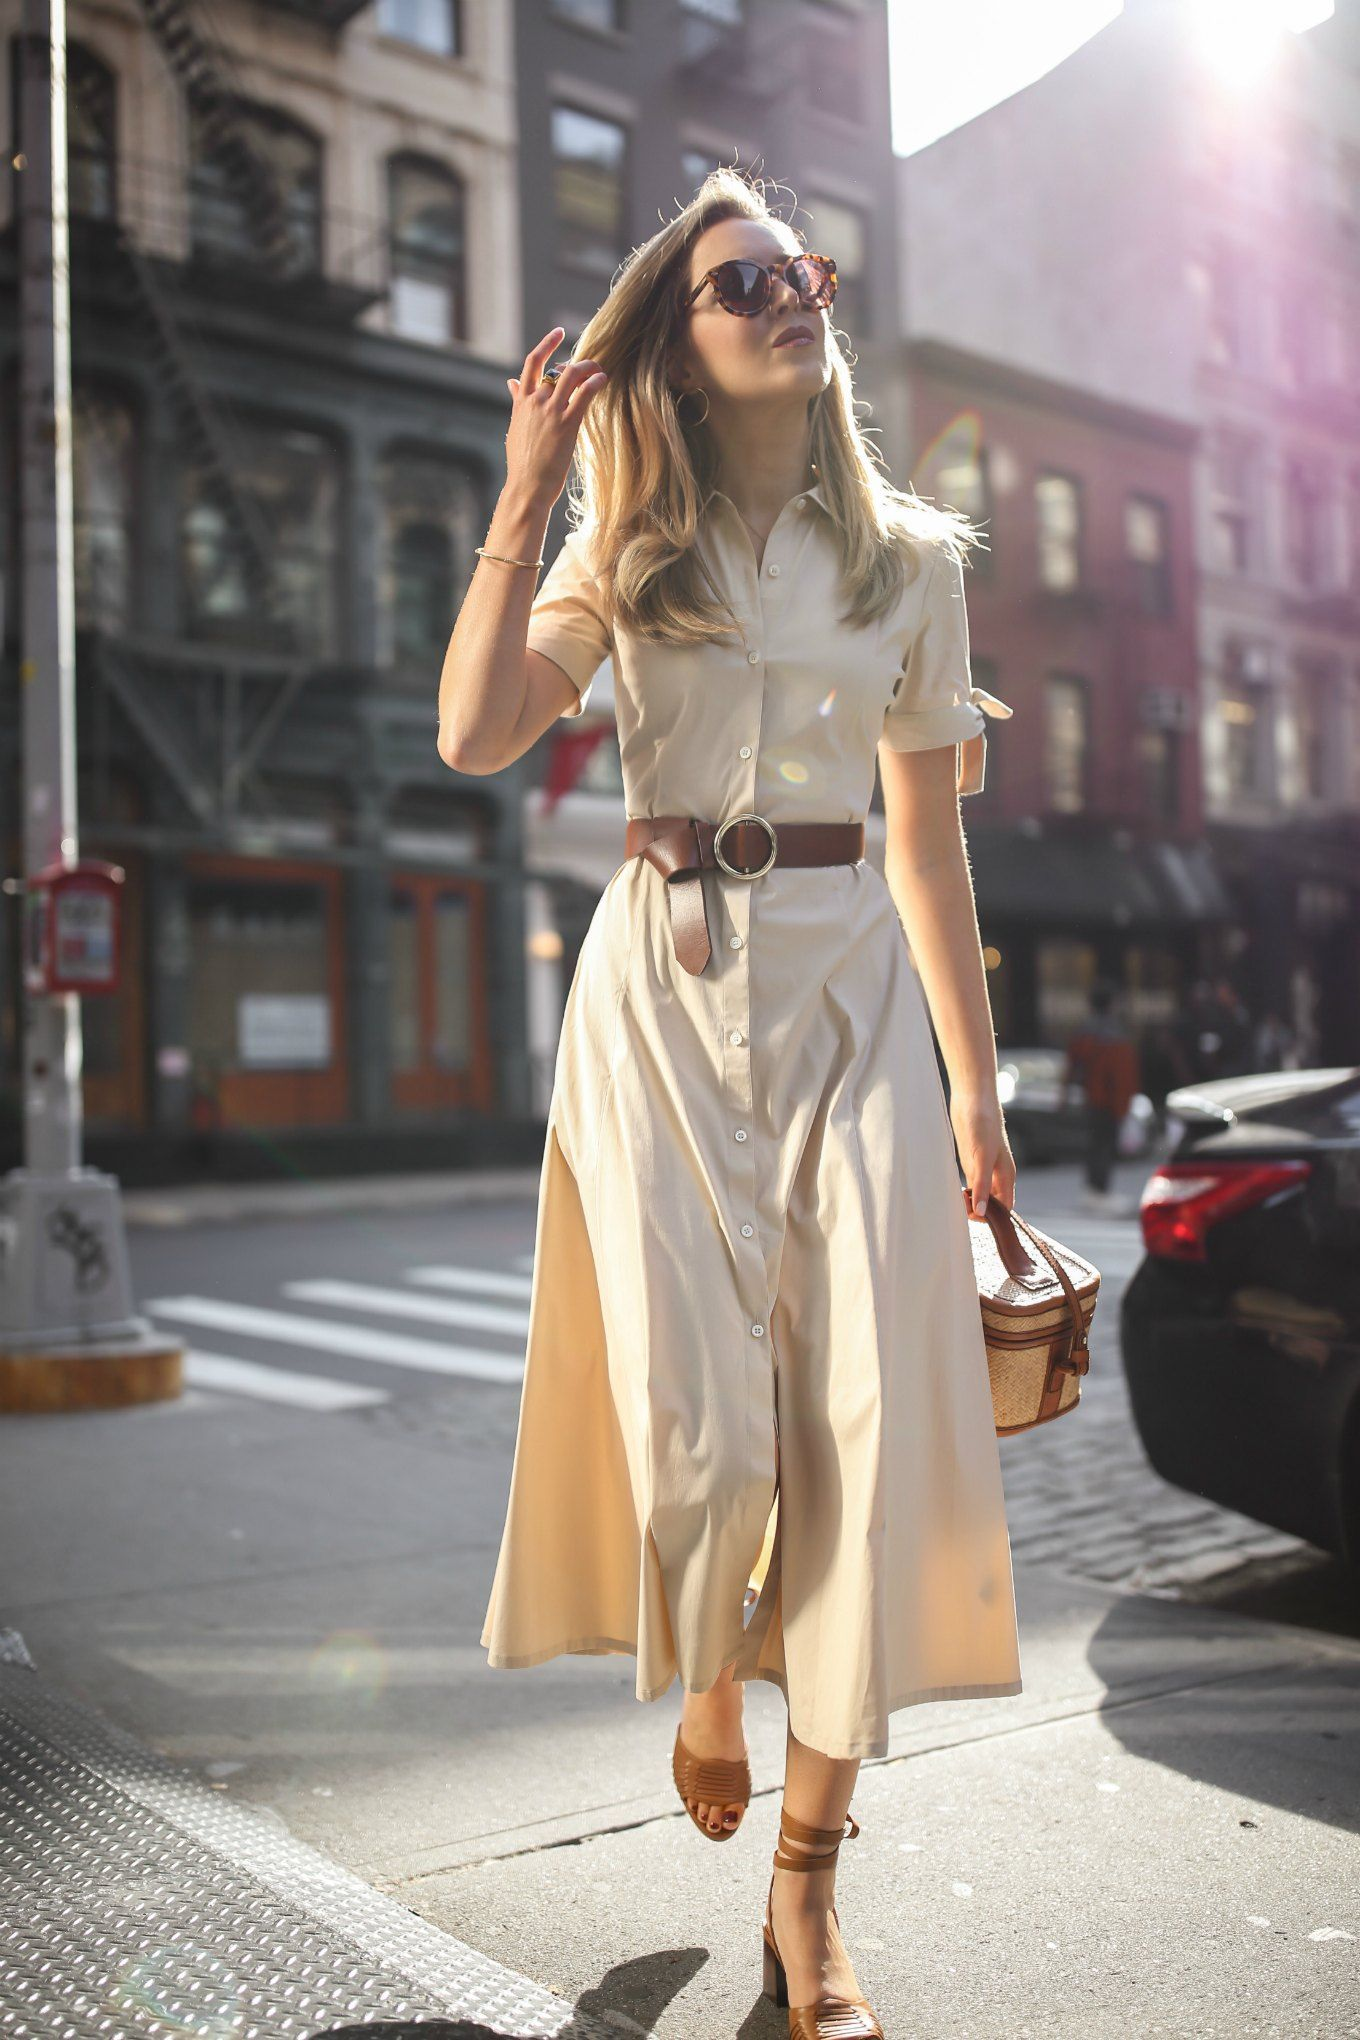 0baead983aac DAY 18: CASUAL FRIDAY | MEMORANDUM | NYC Fashion & Lifestyle Blog for the  Working Girl